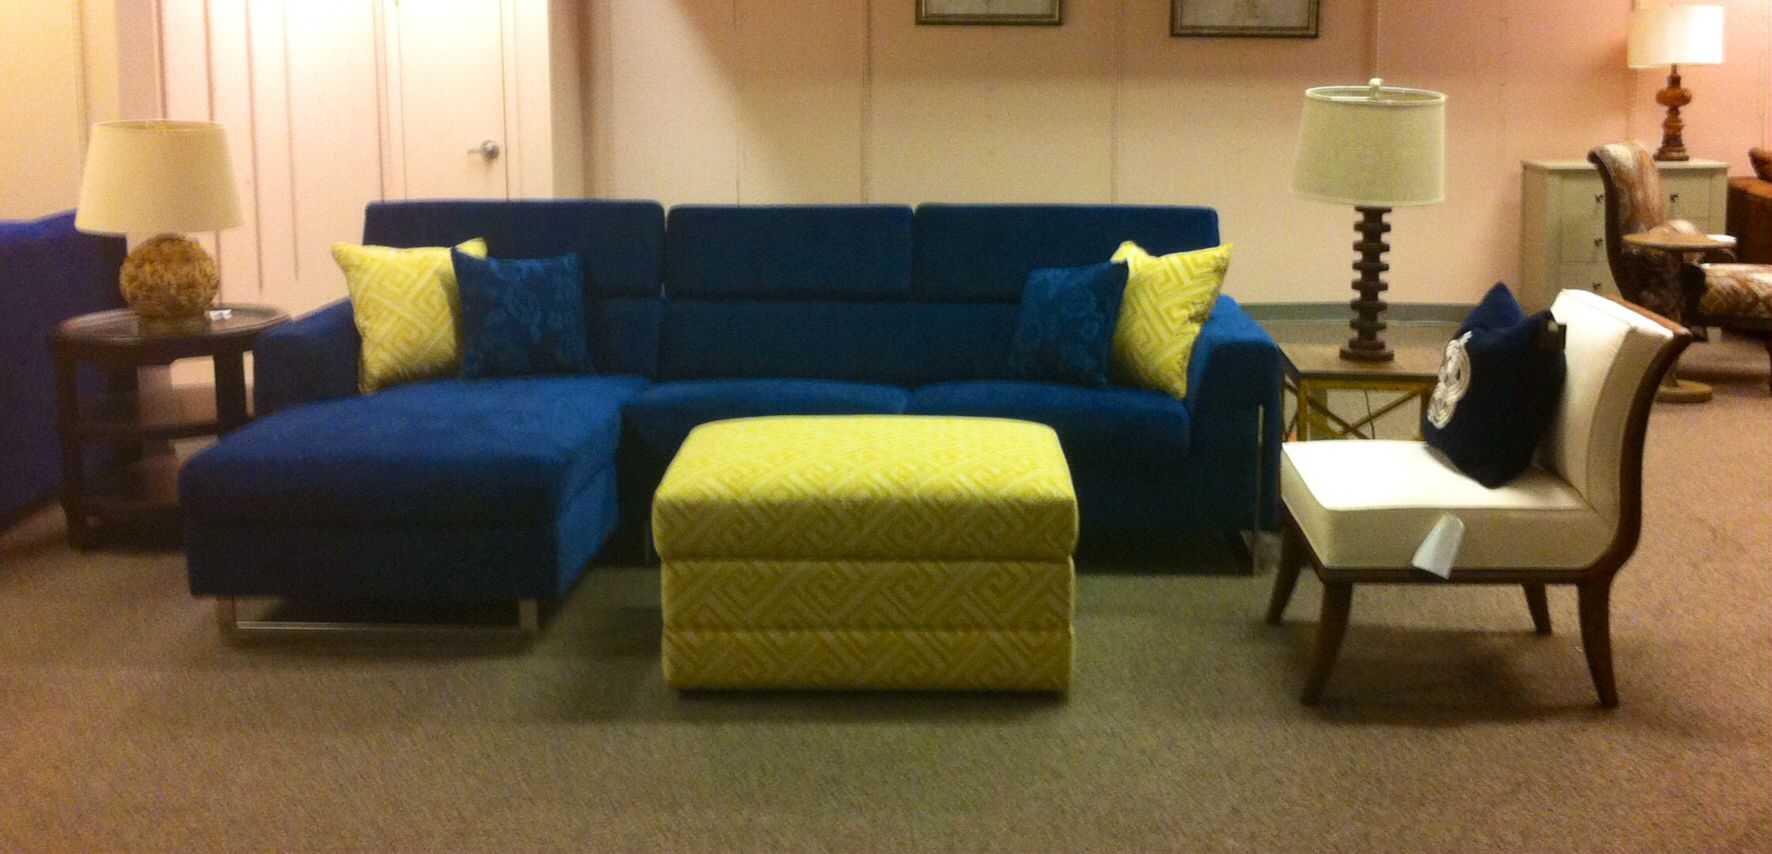 navy blue chaise couch 600 yellow chevron oversized storage ottoman w 2 matching pillows 250. Black Bedroom Furniture Sets. Home Design Ideas